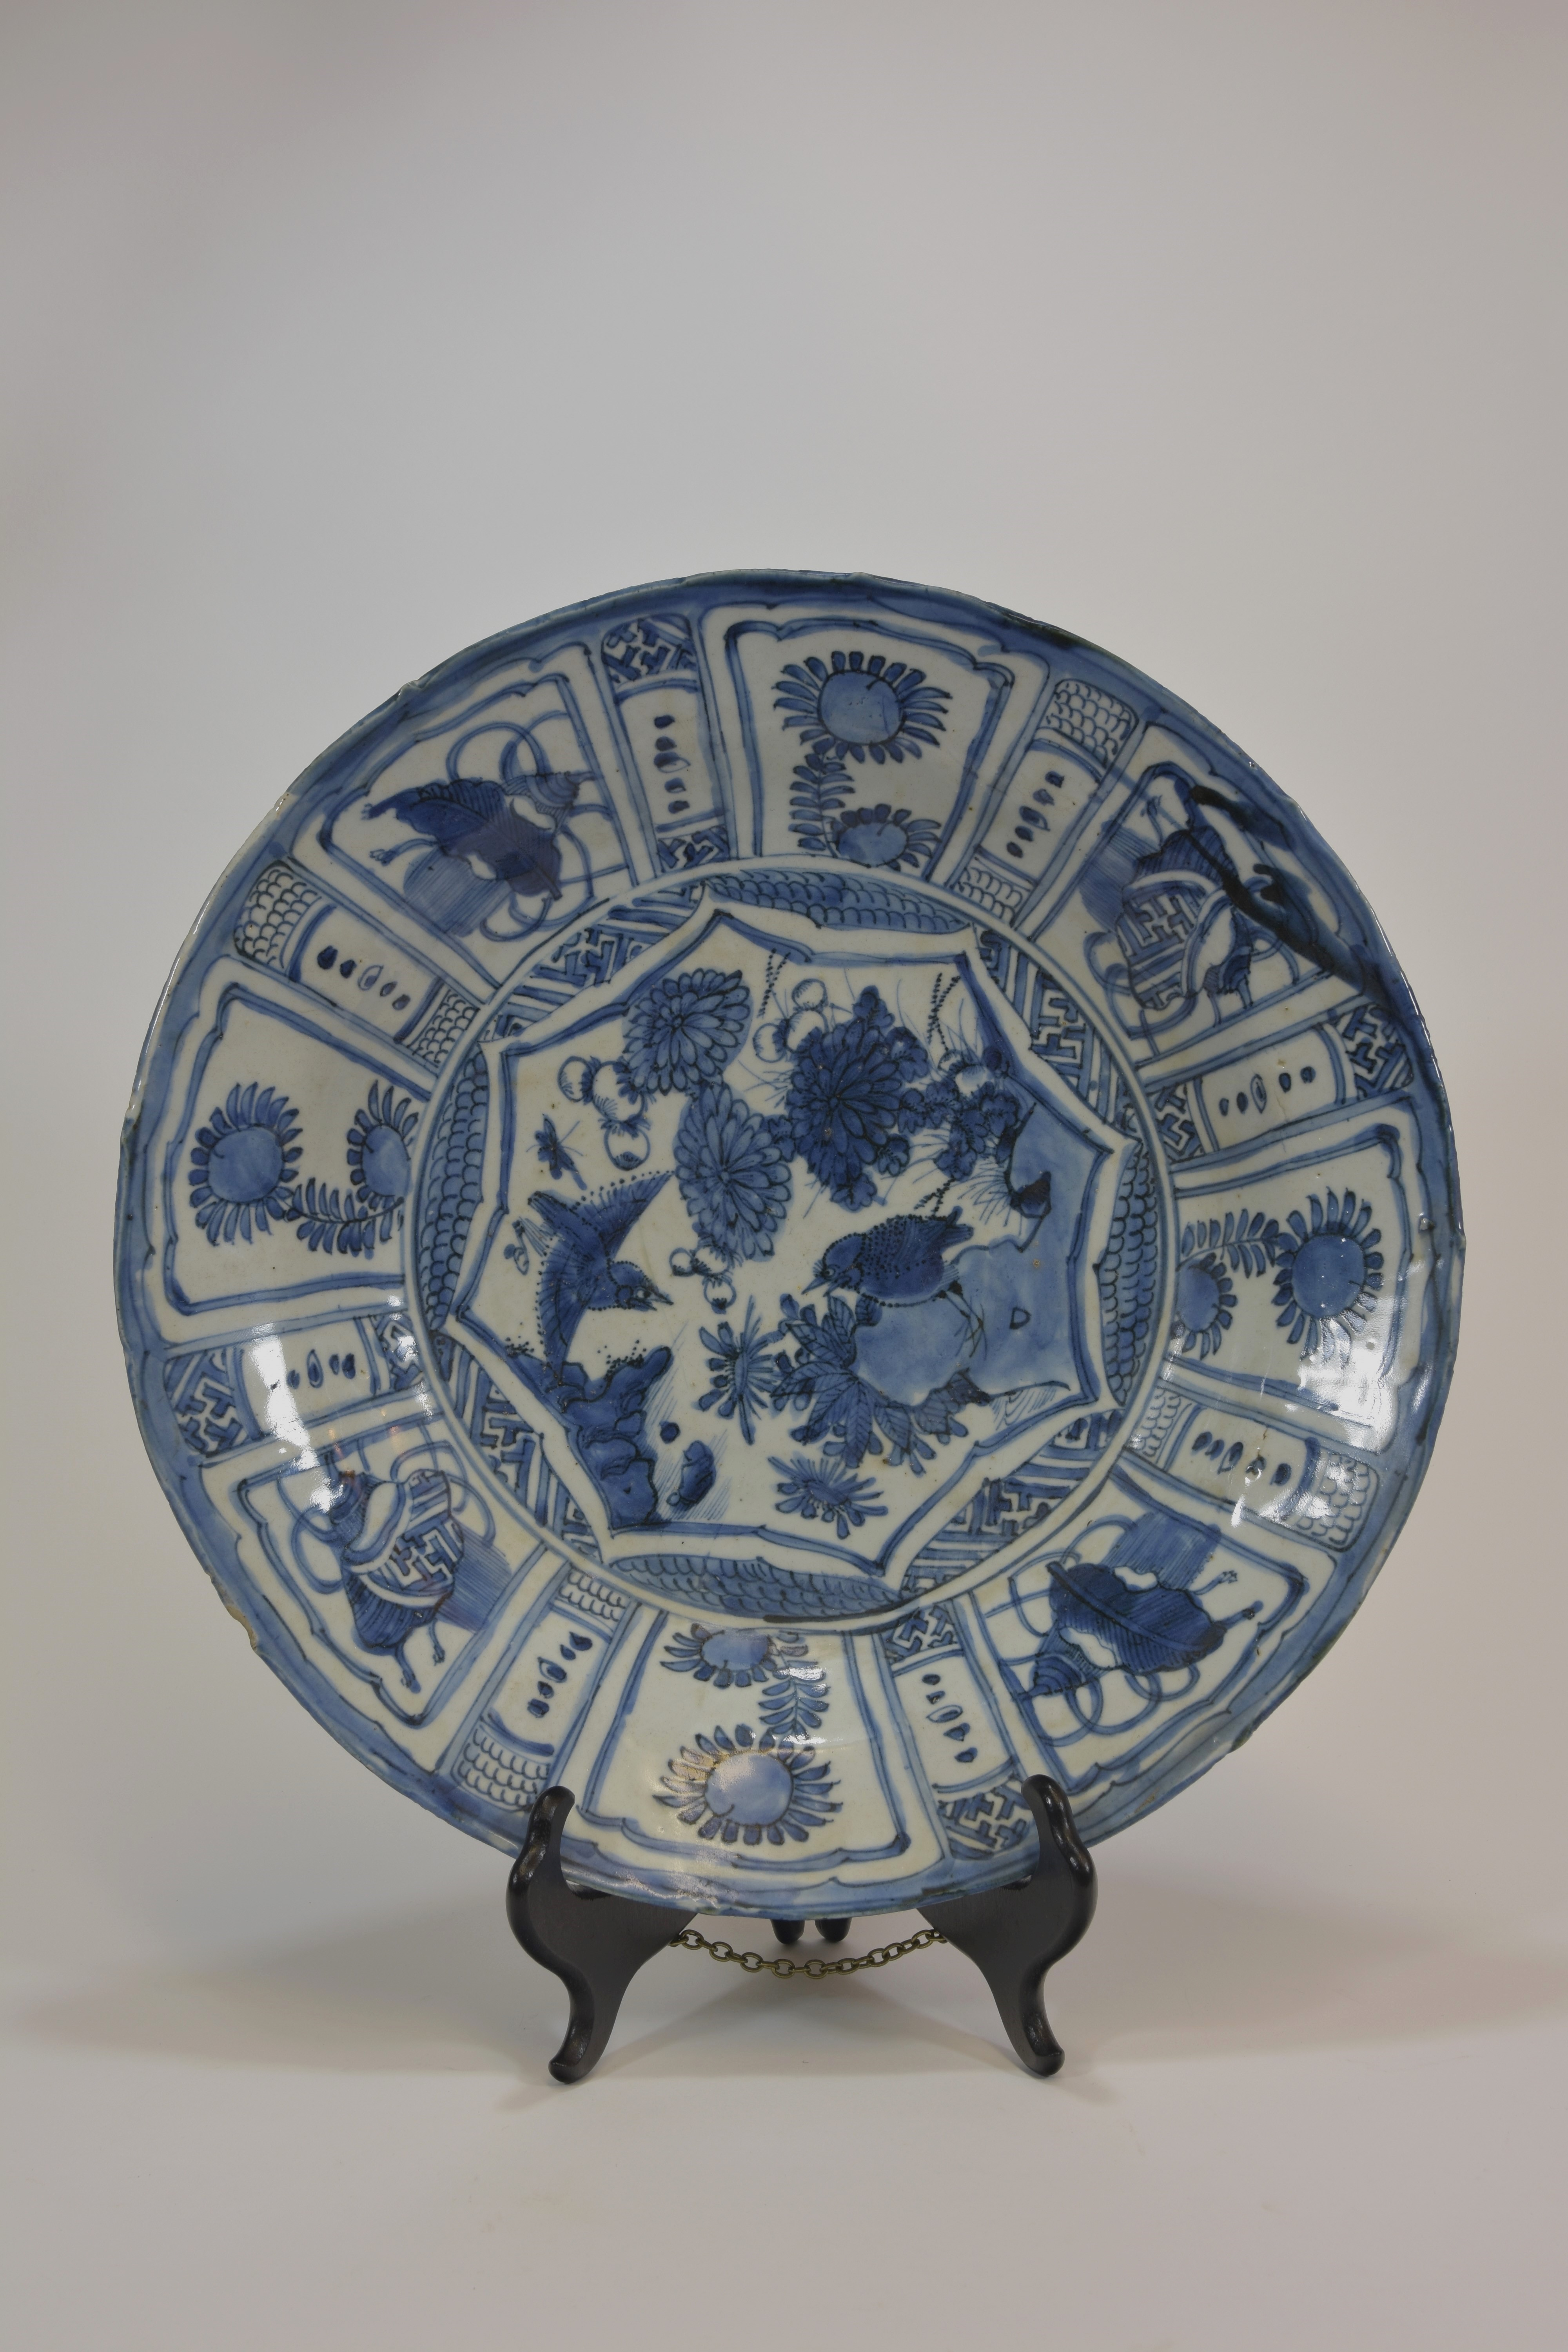 Lot 5 - A 17th Ming dynasty blue and white Kraak dish 35cm diameter明 十七世紀 青花花鳥大碟